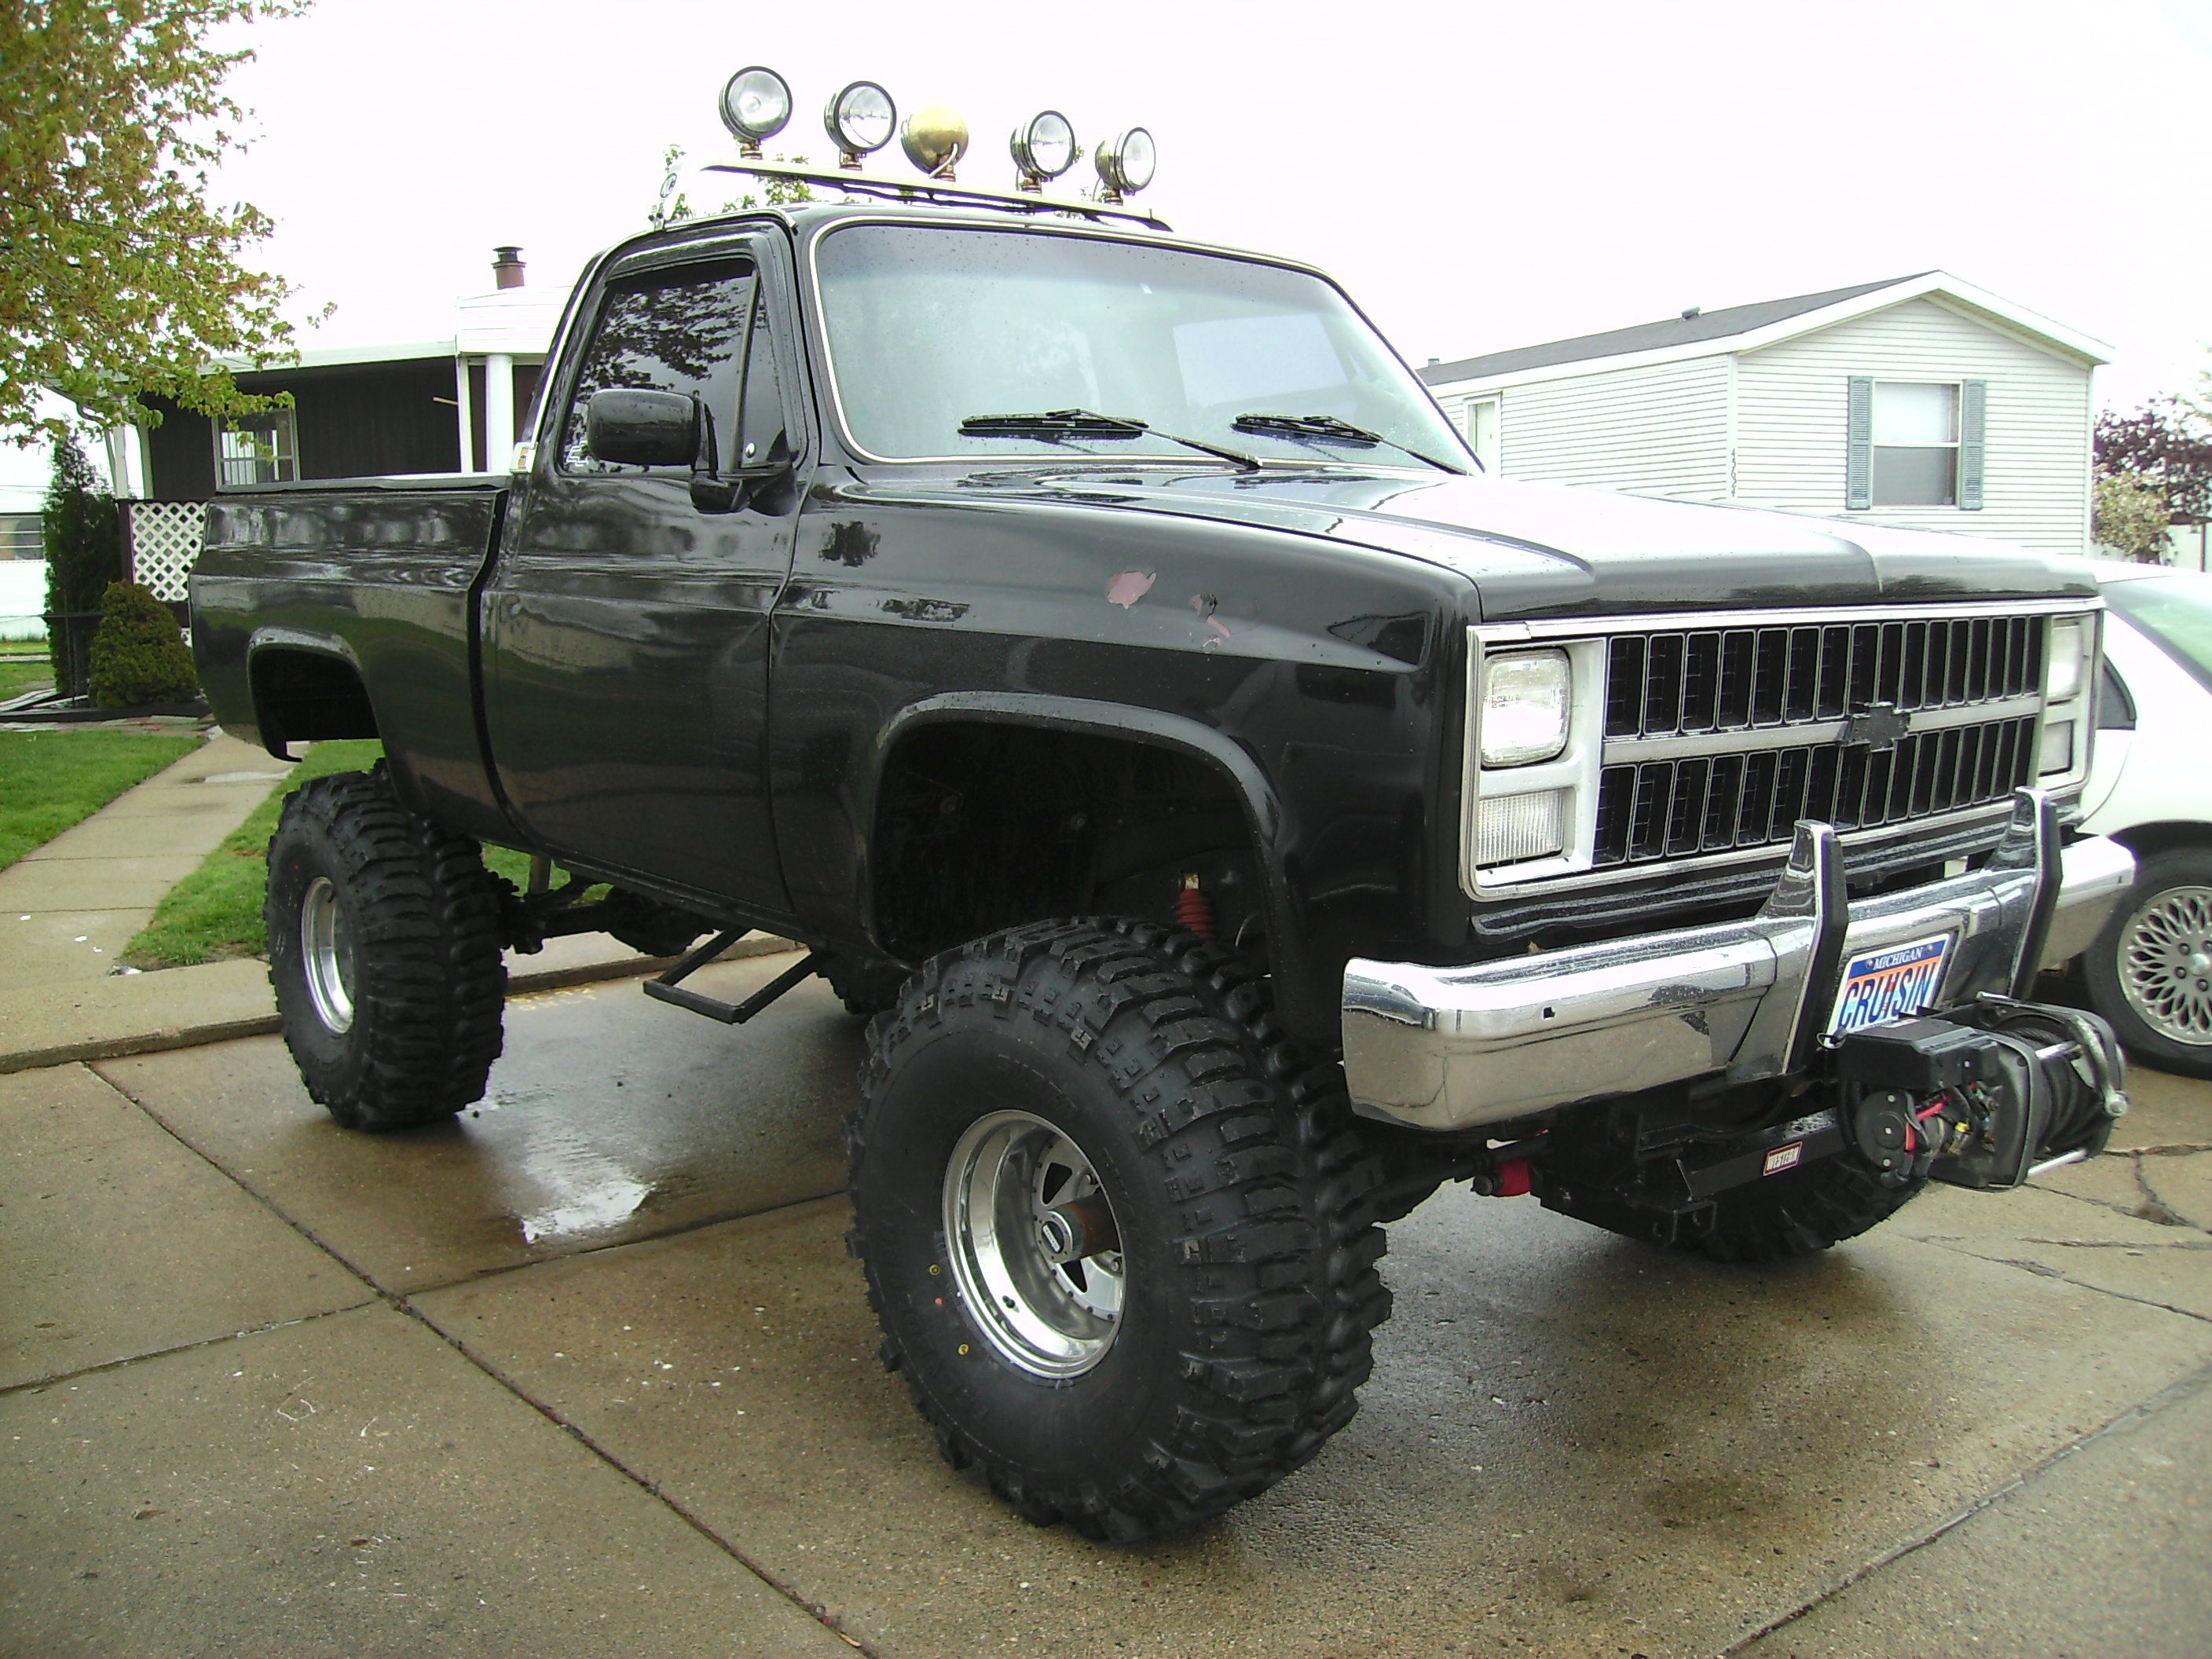 1985 Chevy Truck 4 4 Automotives Pinterest Cars Jeeps And 4x4